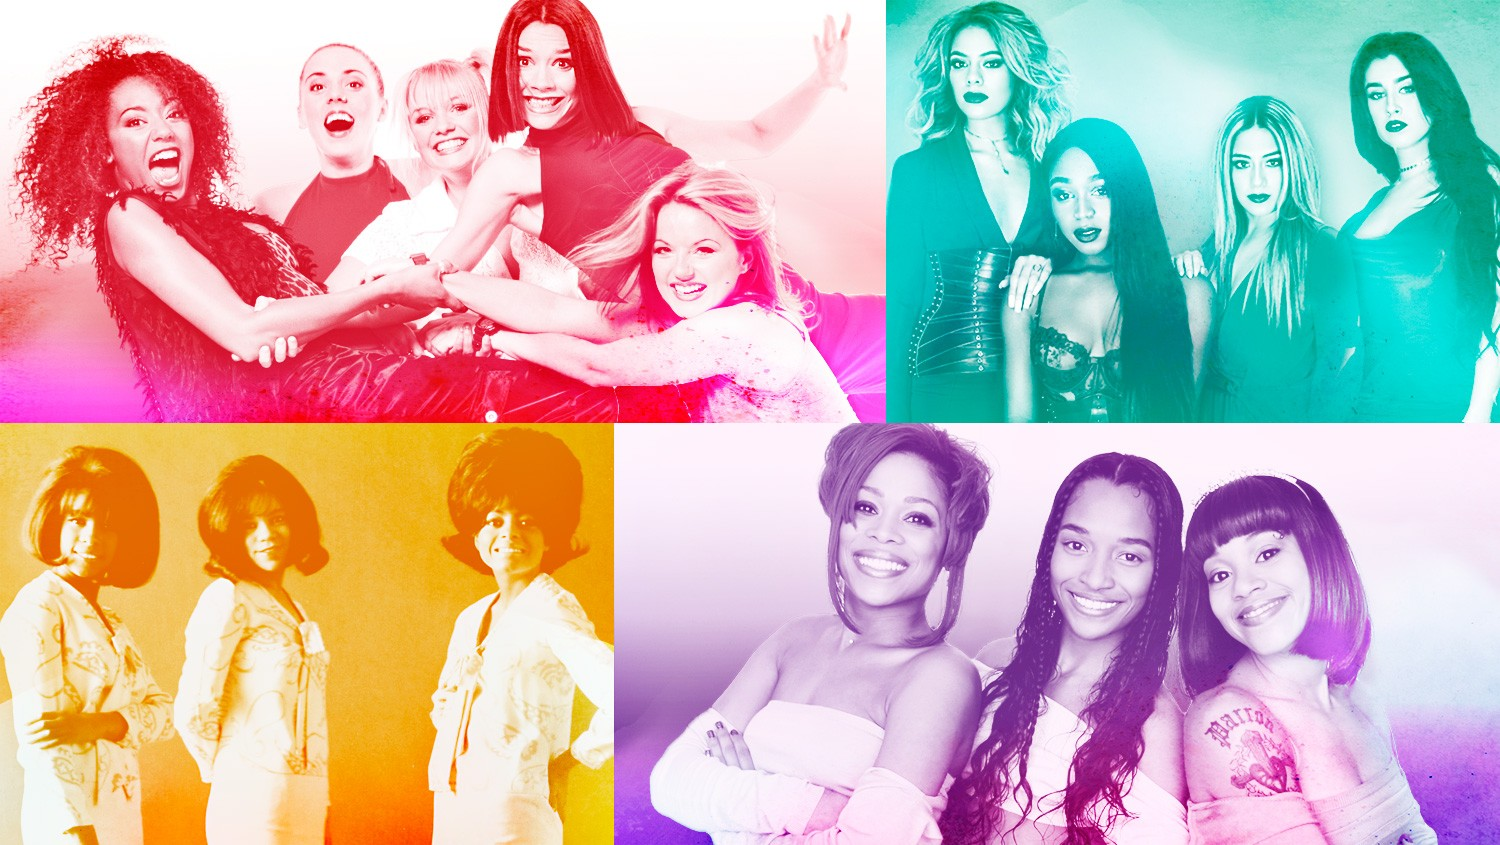 (Clockwise from top left) Spice Girls, Fifth Harmony, TLC & The Supremes